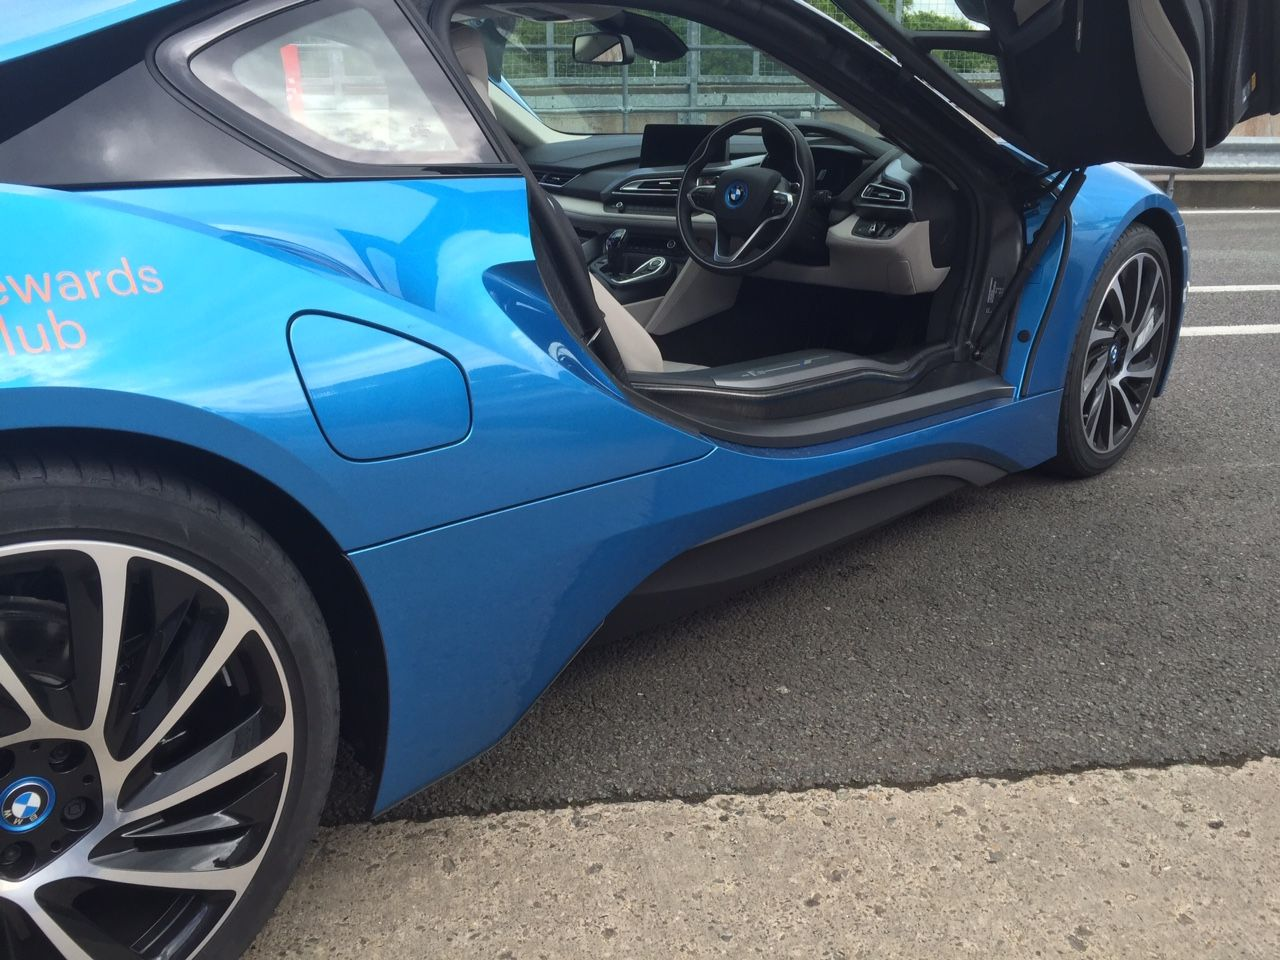 The Bmw I8 Carleasing Deal One Of The Many Cars And Vans